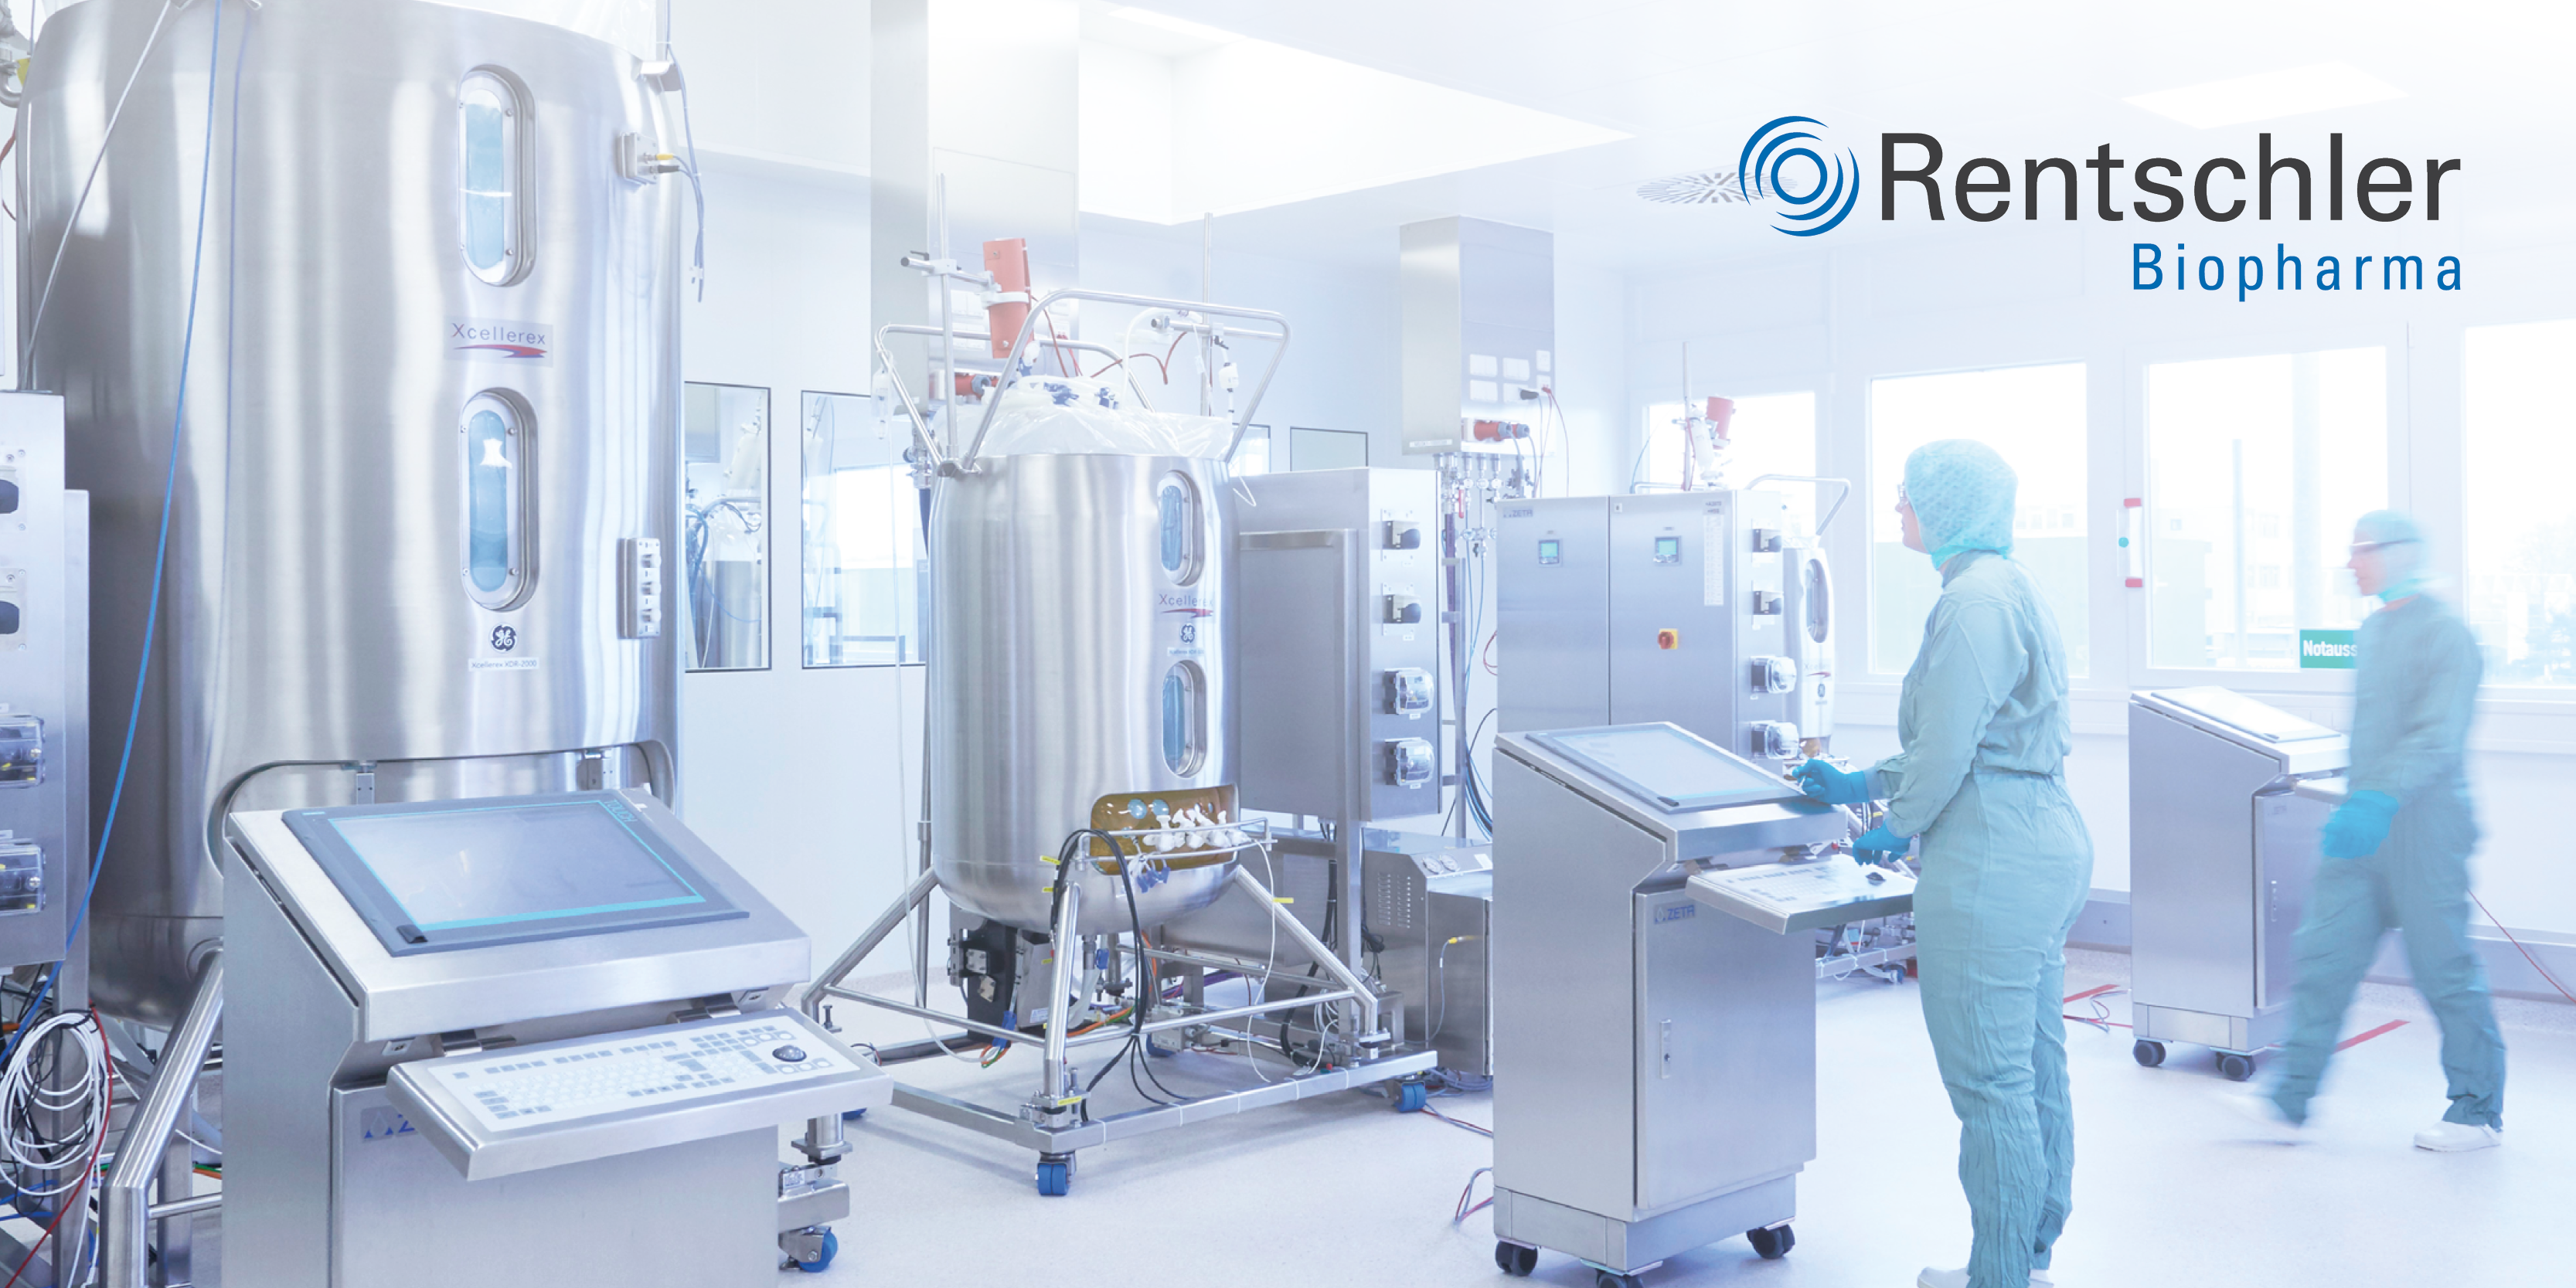 Rentschler Biopharma expands production of highly complex antibodies at German site